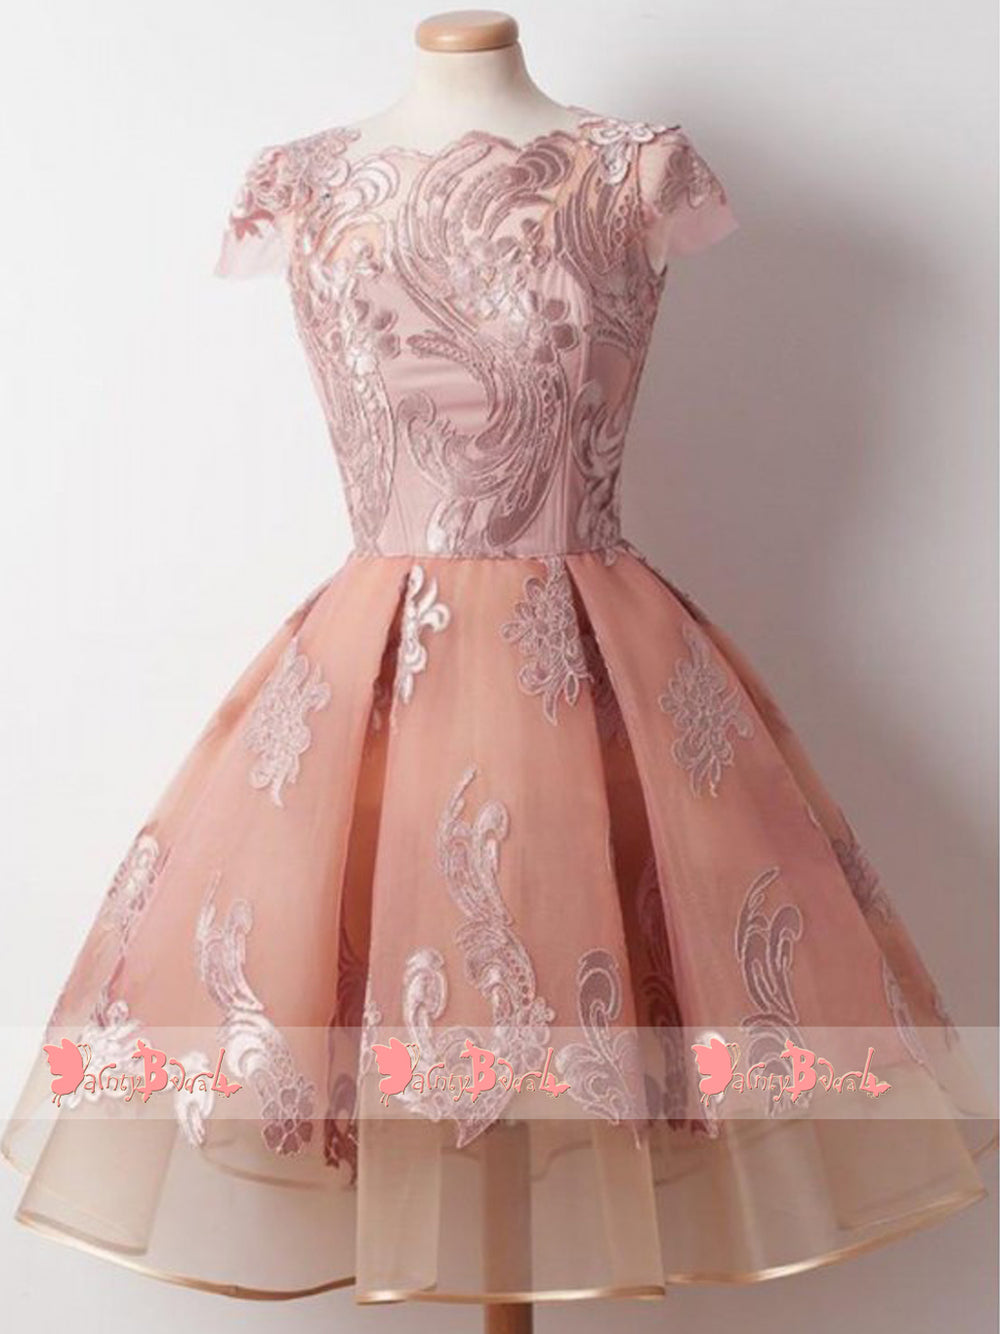 c9e6878a05a2 Sweet_Pink_Lace_Appliques_Cap_Sleeve_Keyhole_Back_Homecoming_Dresses_BD0151-1_1000x.jpg? v=1526624490